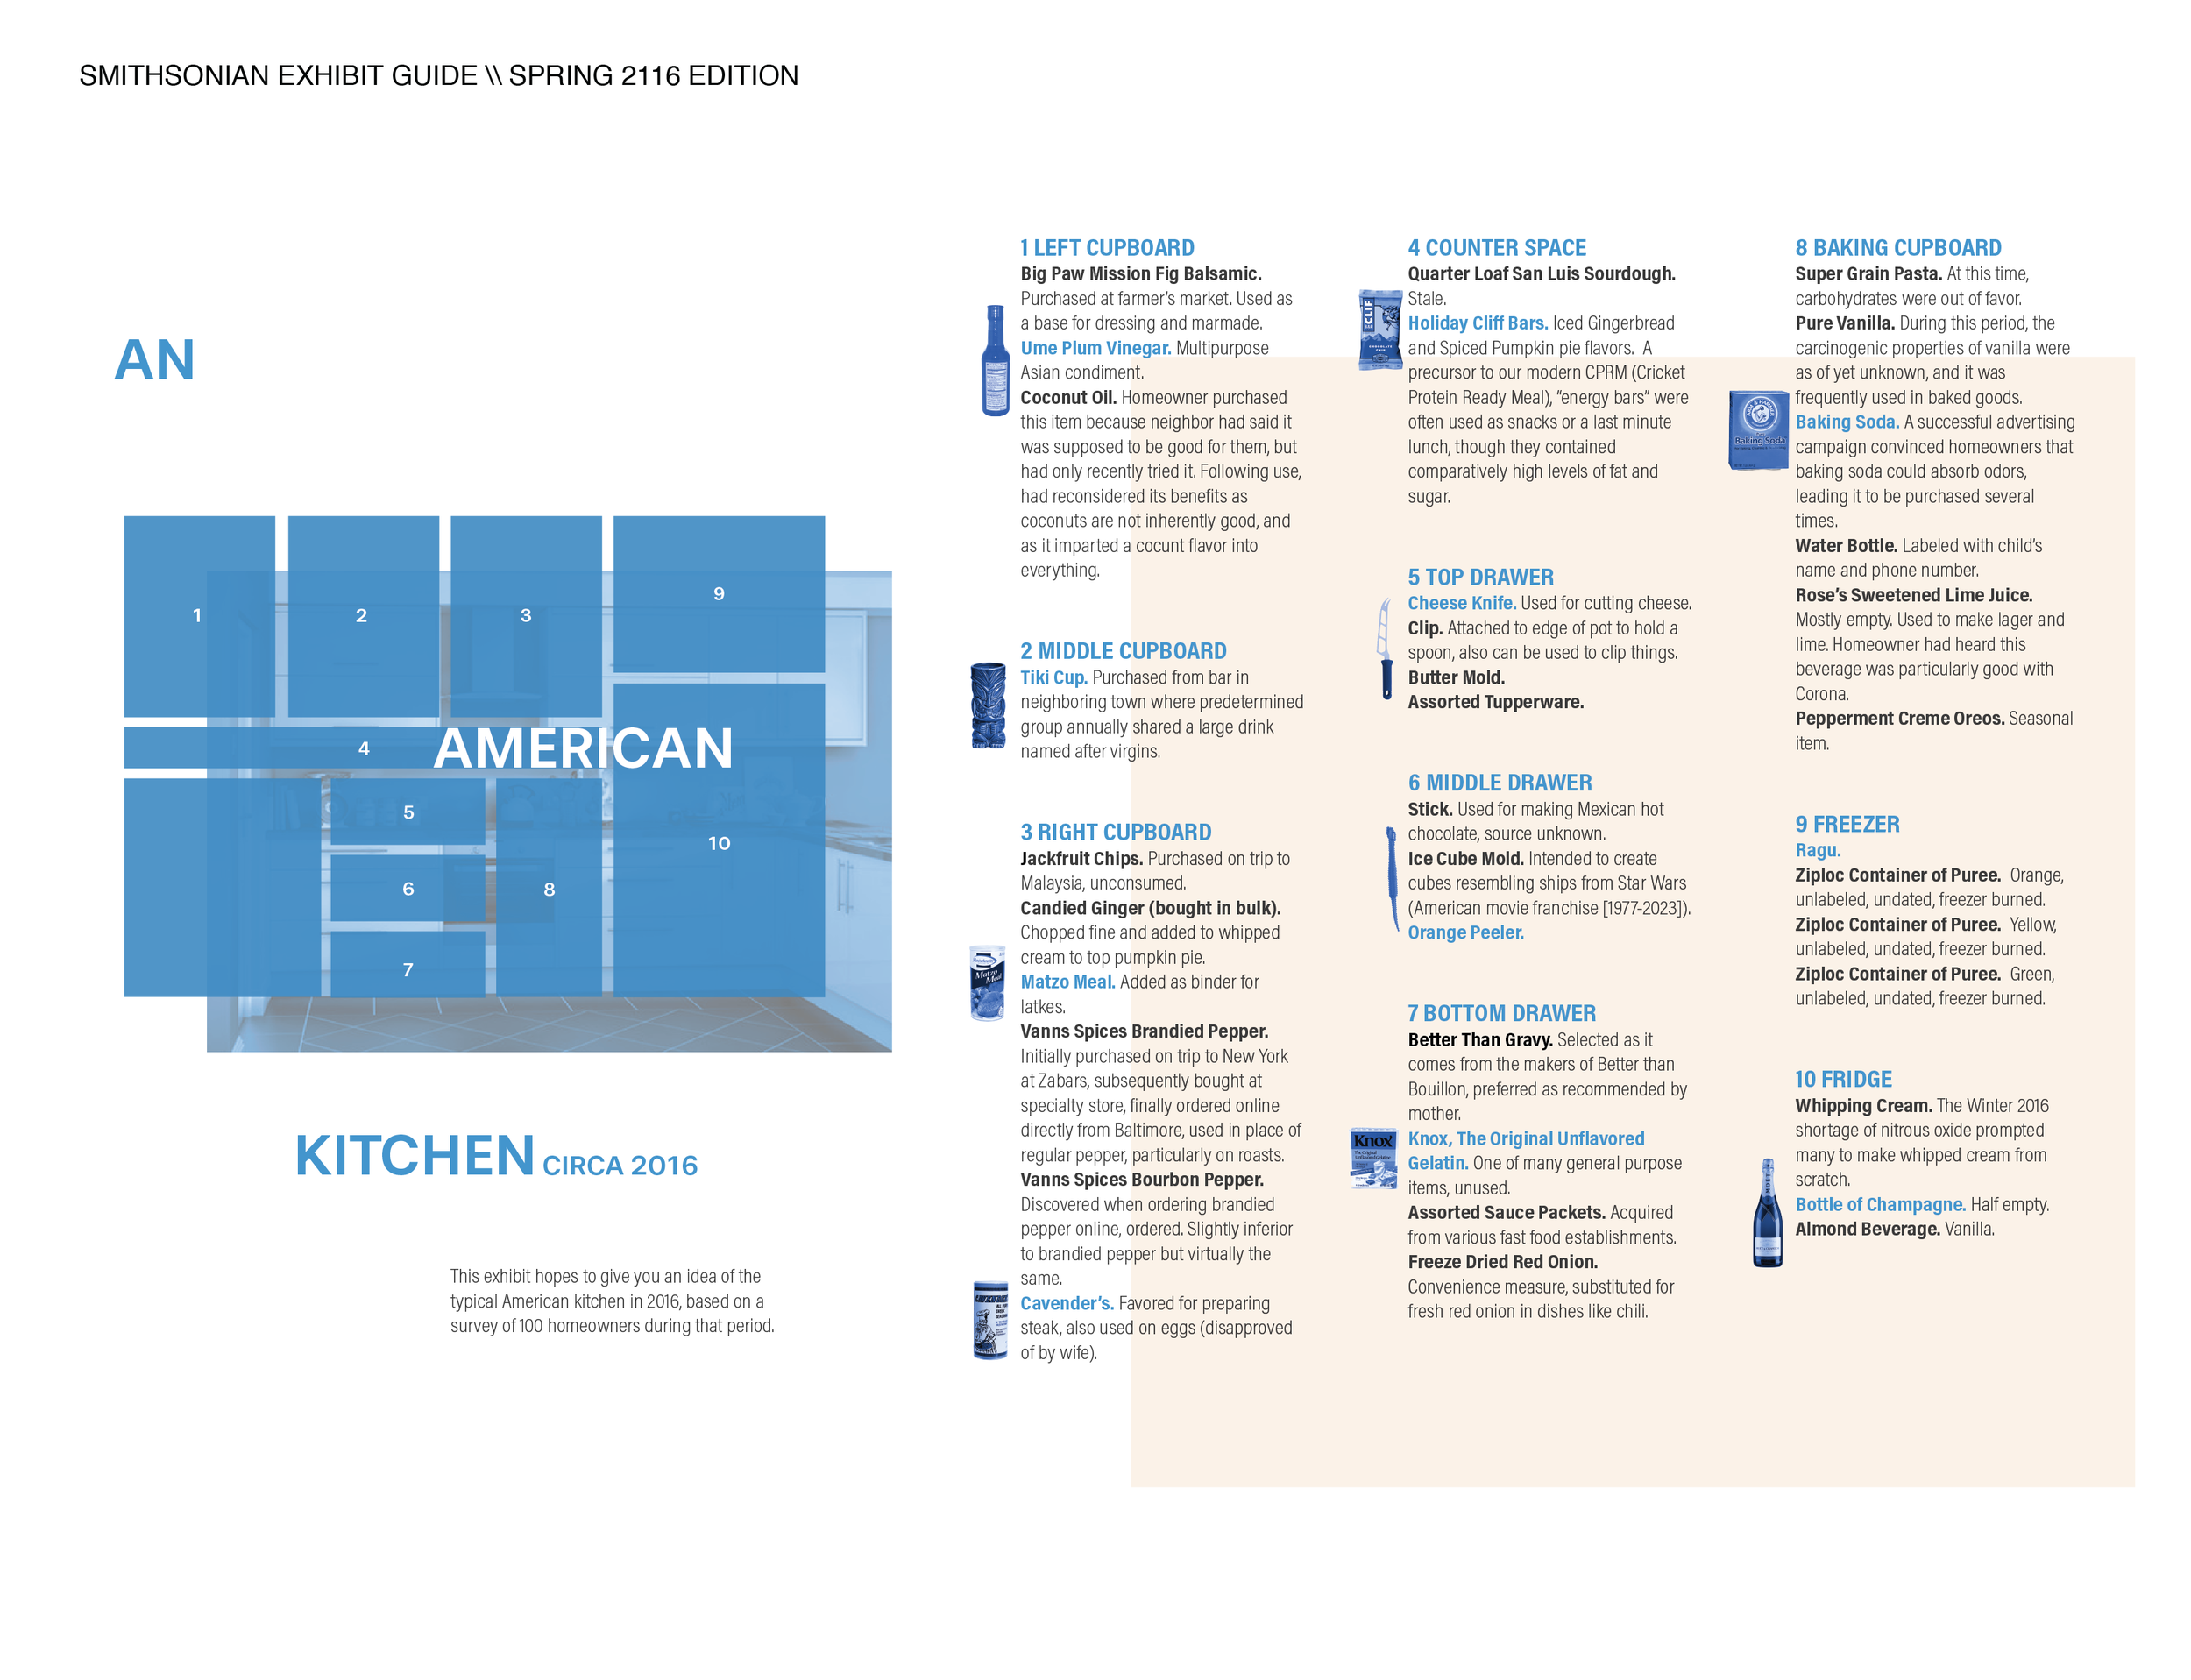 A satirical exhibit guide to an American kitchen in 2016.